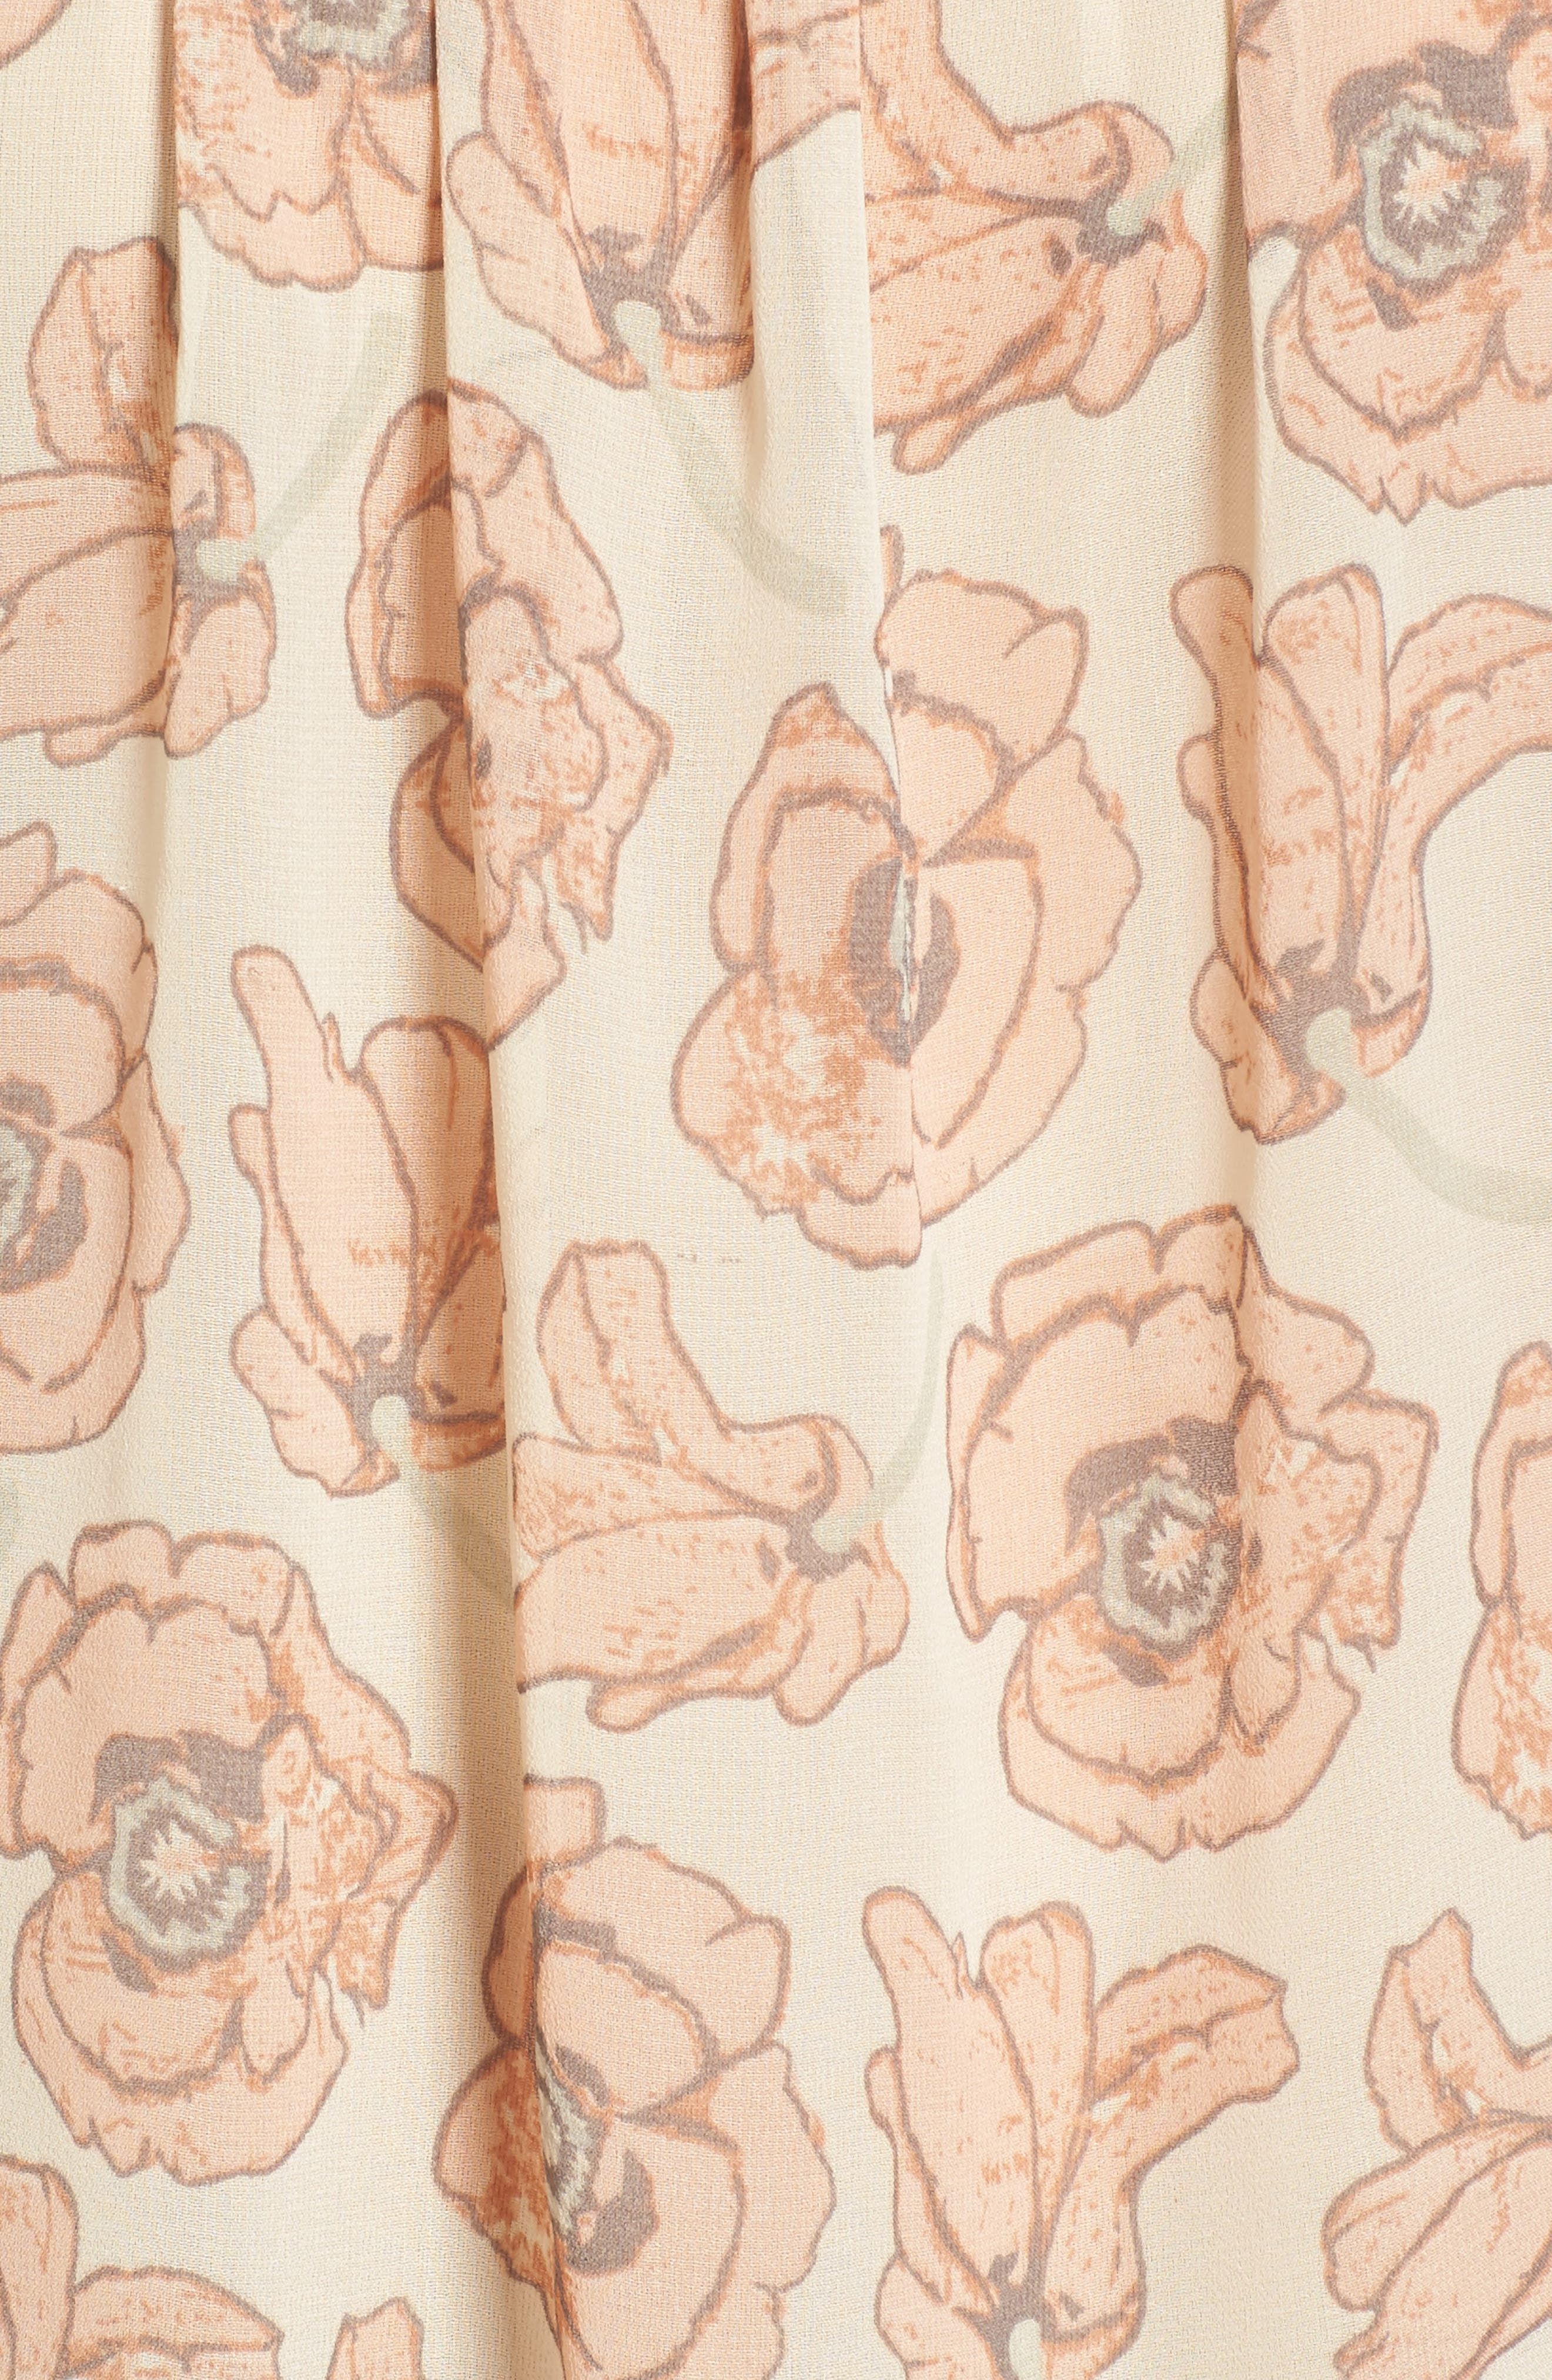 Exploded Floral Top,                             Alternate thumbnail 5, color,                             690